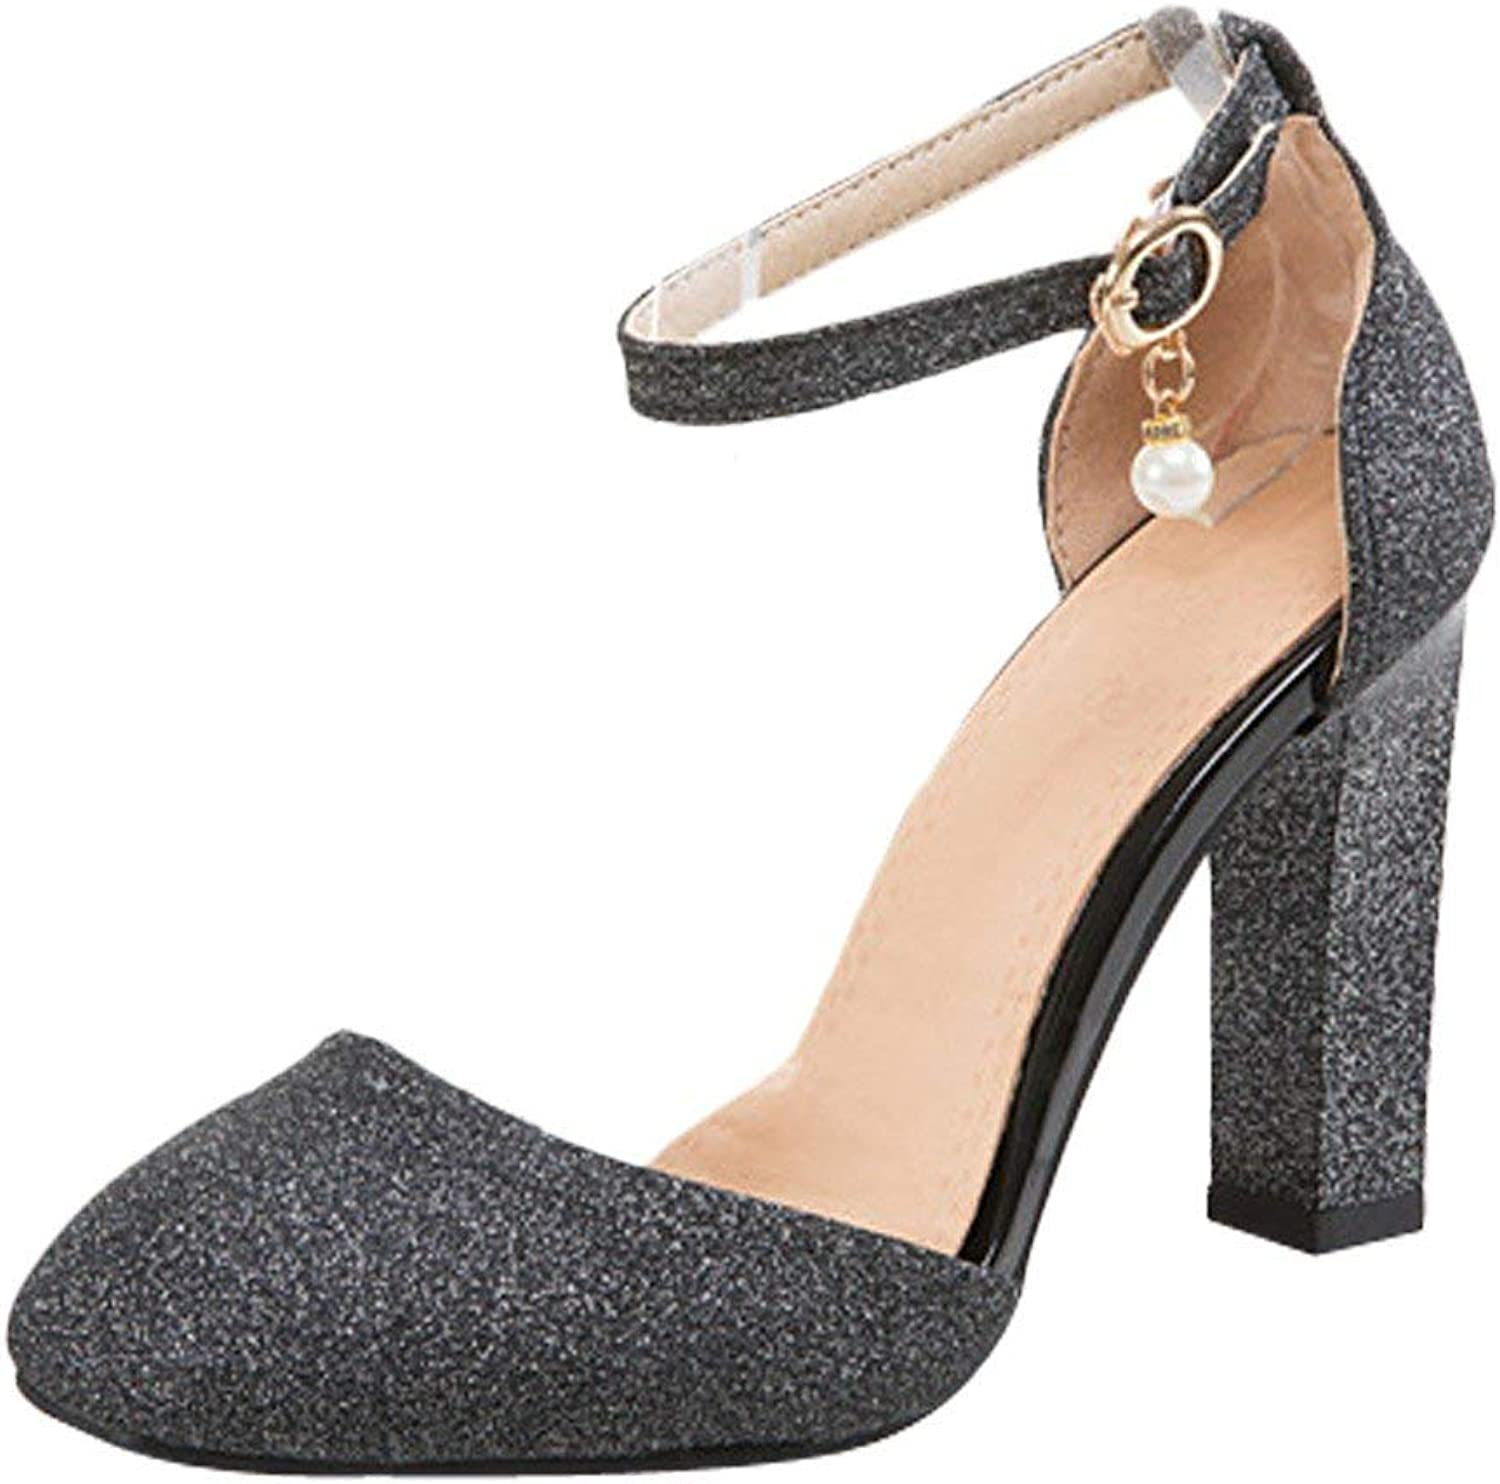 Gcanwea Women's Chunky High Heel Ankle Strap D'Orsay shoes Sexy Ladies Dress Simple Sequins Fashion Square Toes Breathable Summer Comfortable Skinny Elegant Silver 7.5 M US shoes